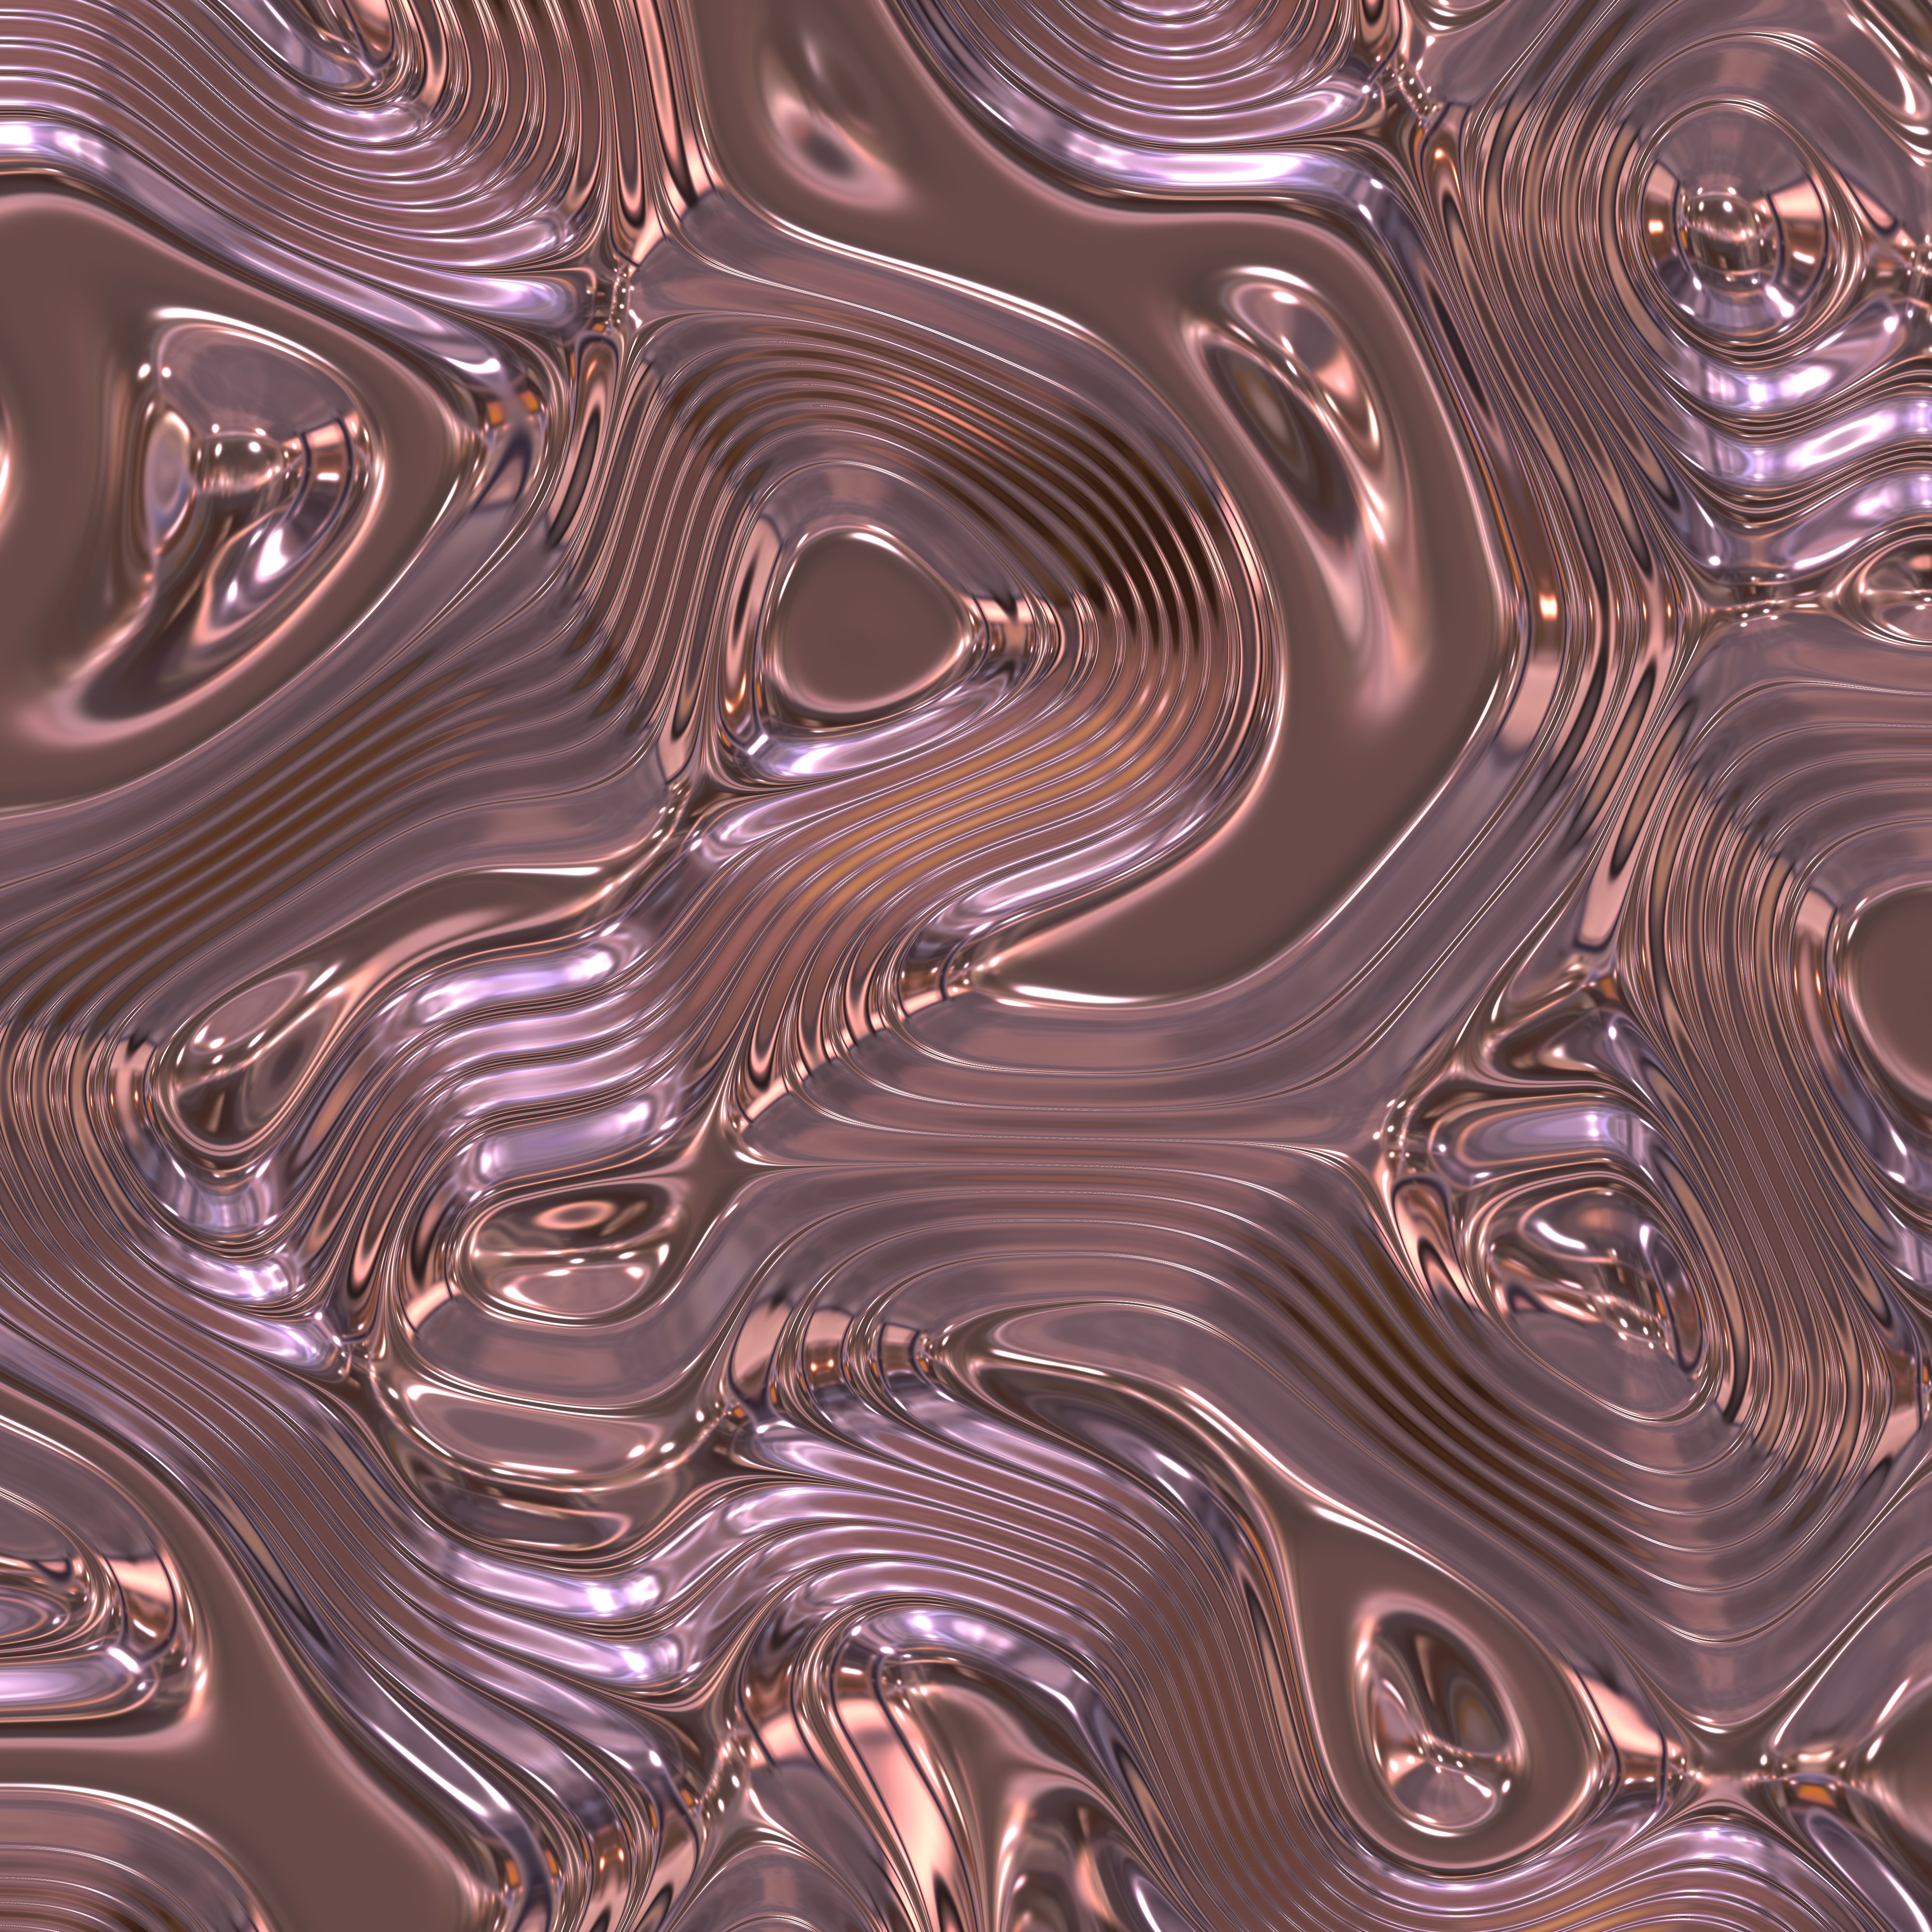 abstract flowing and moving liquid metal background texture www 4000x4000